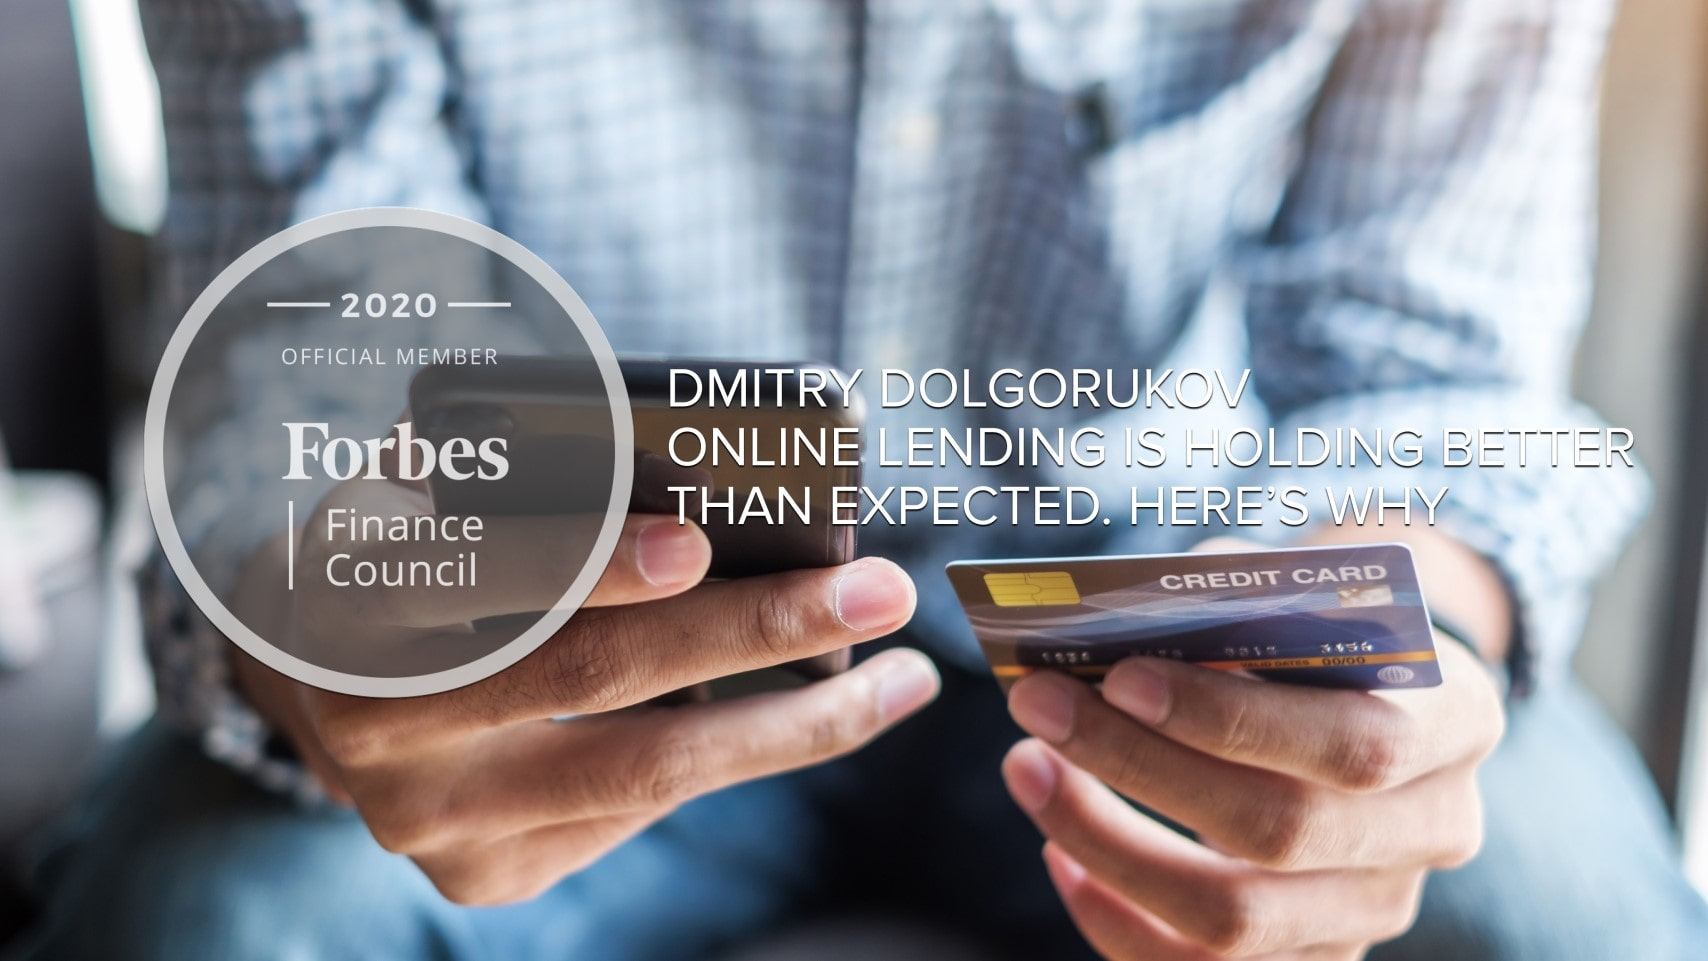 Forbes Council: Online Lending Is Holding Better Than Expected. Here's Why